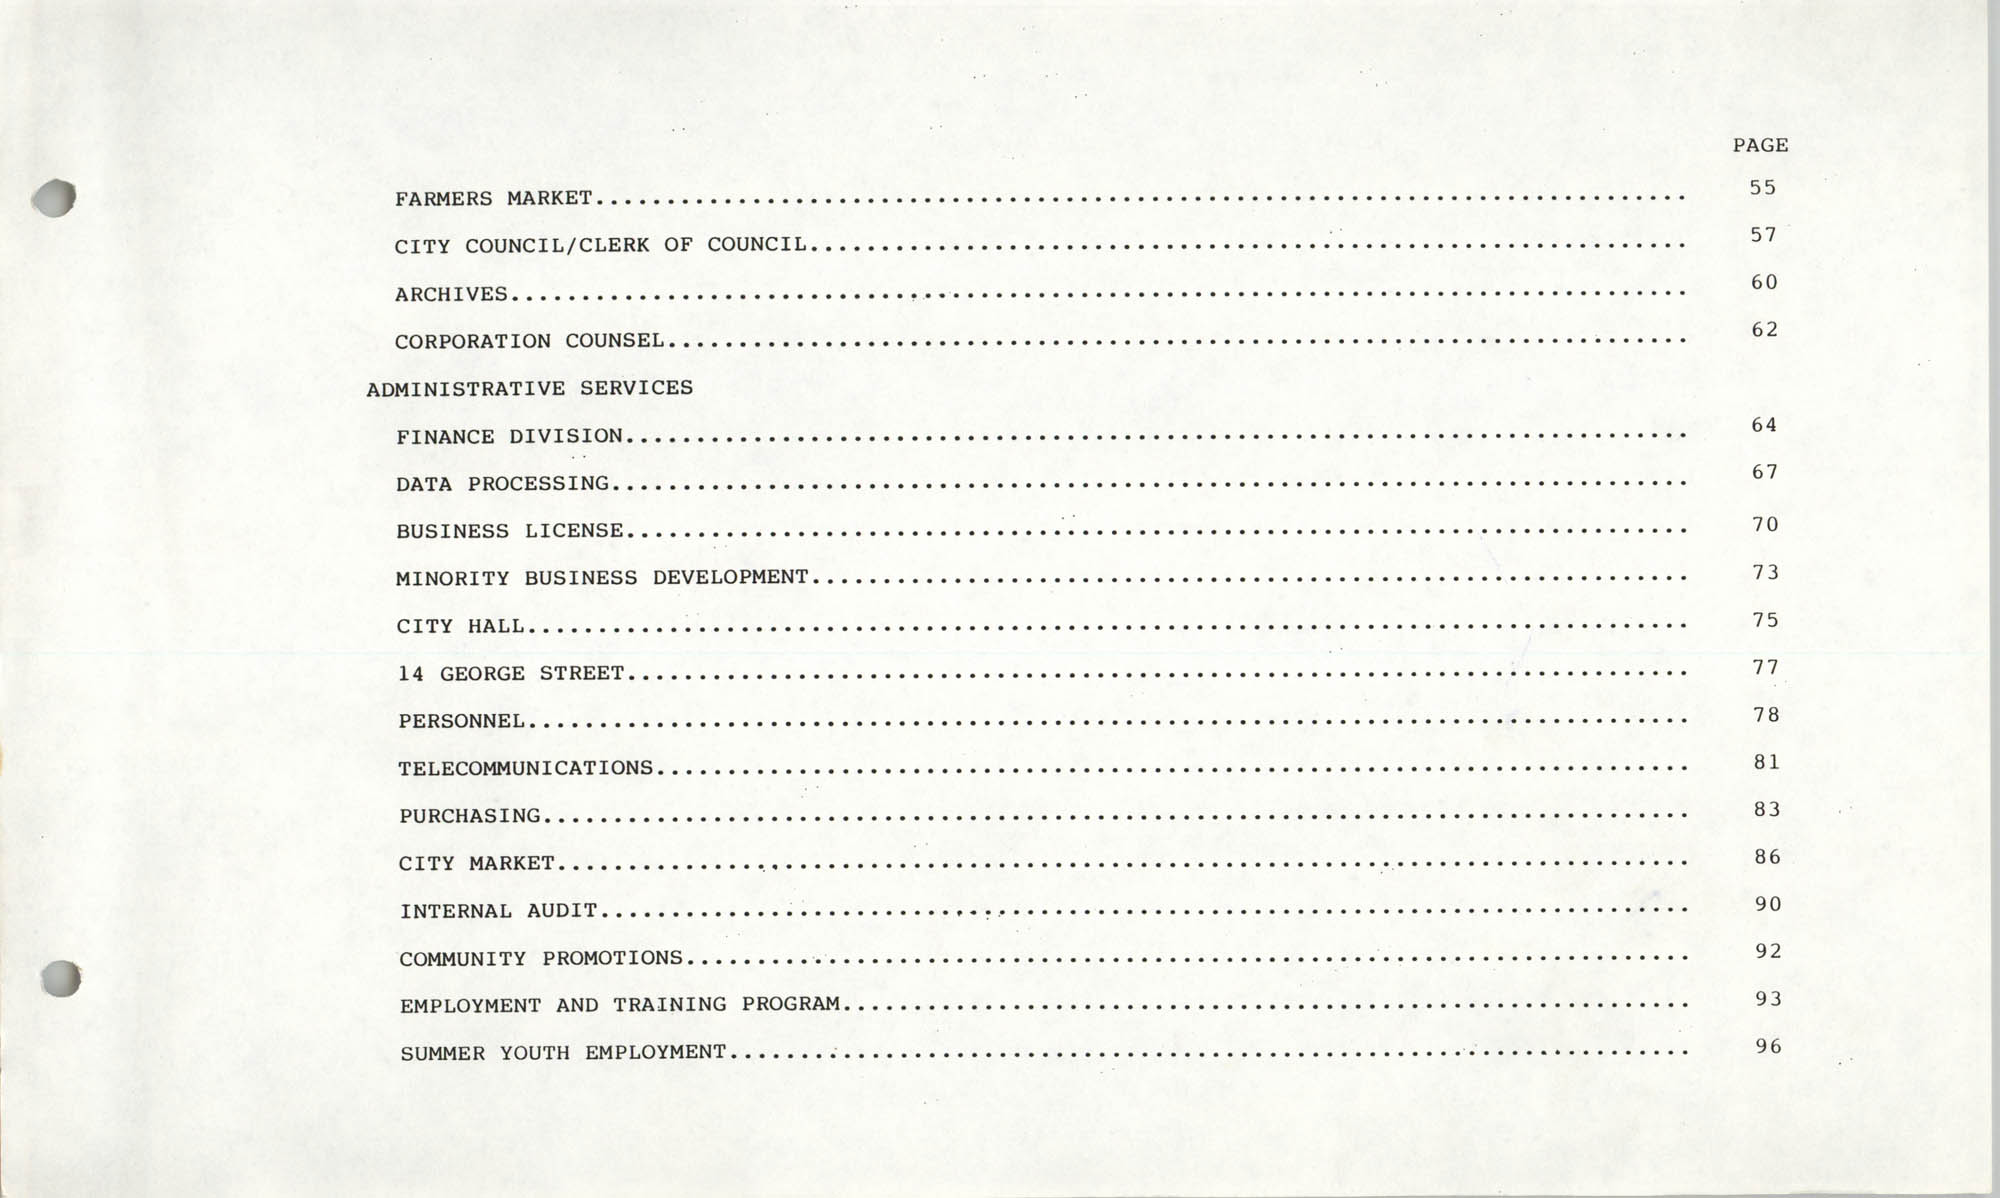 The City Council of Charleston, South Carolina, 1993 Budget, Table of Contents Page 2